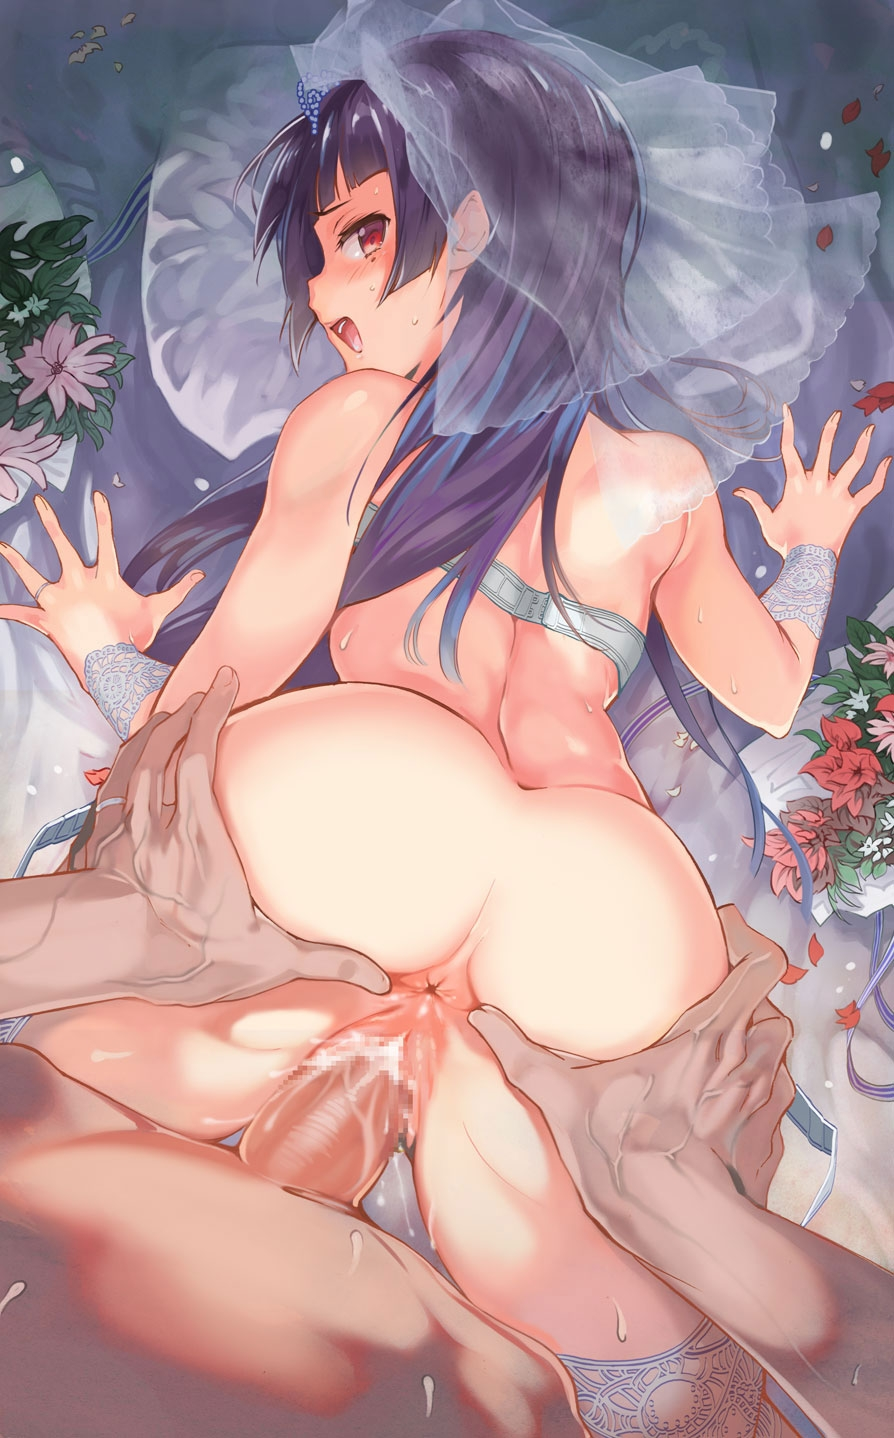 Hentai underworld animated adult gallery